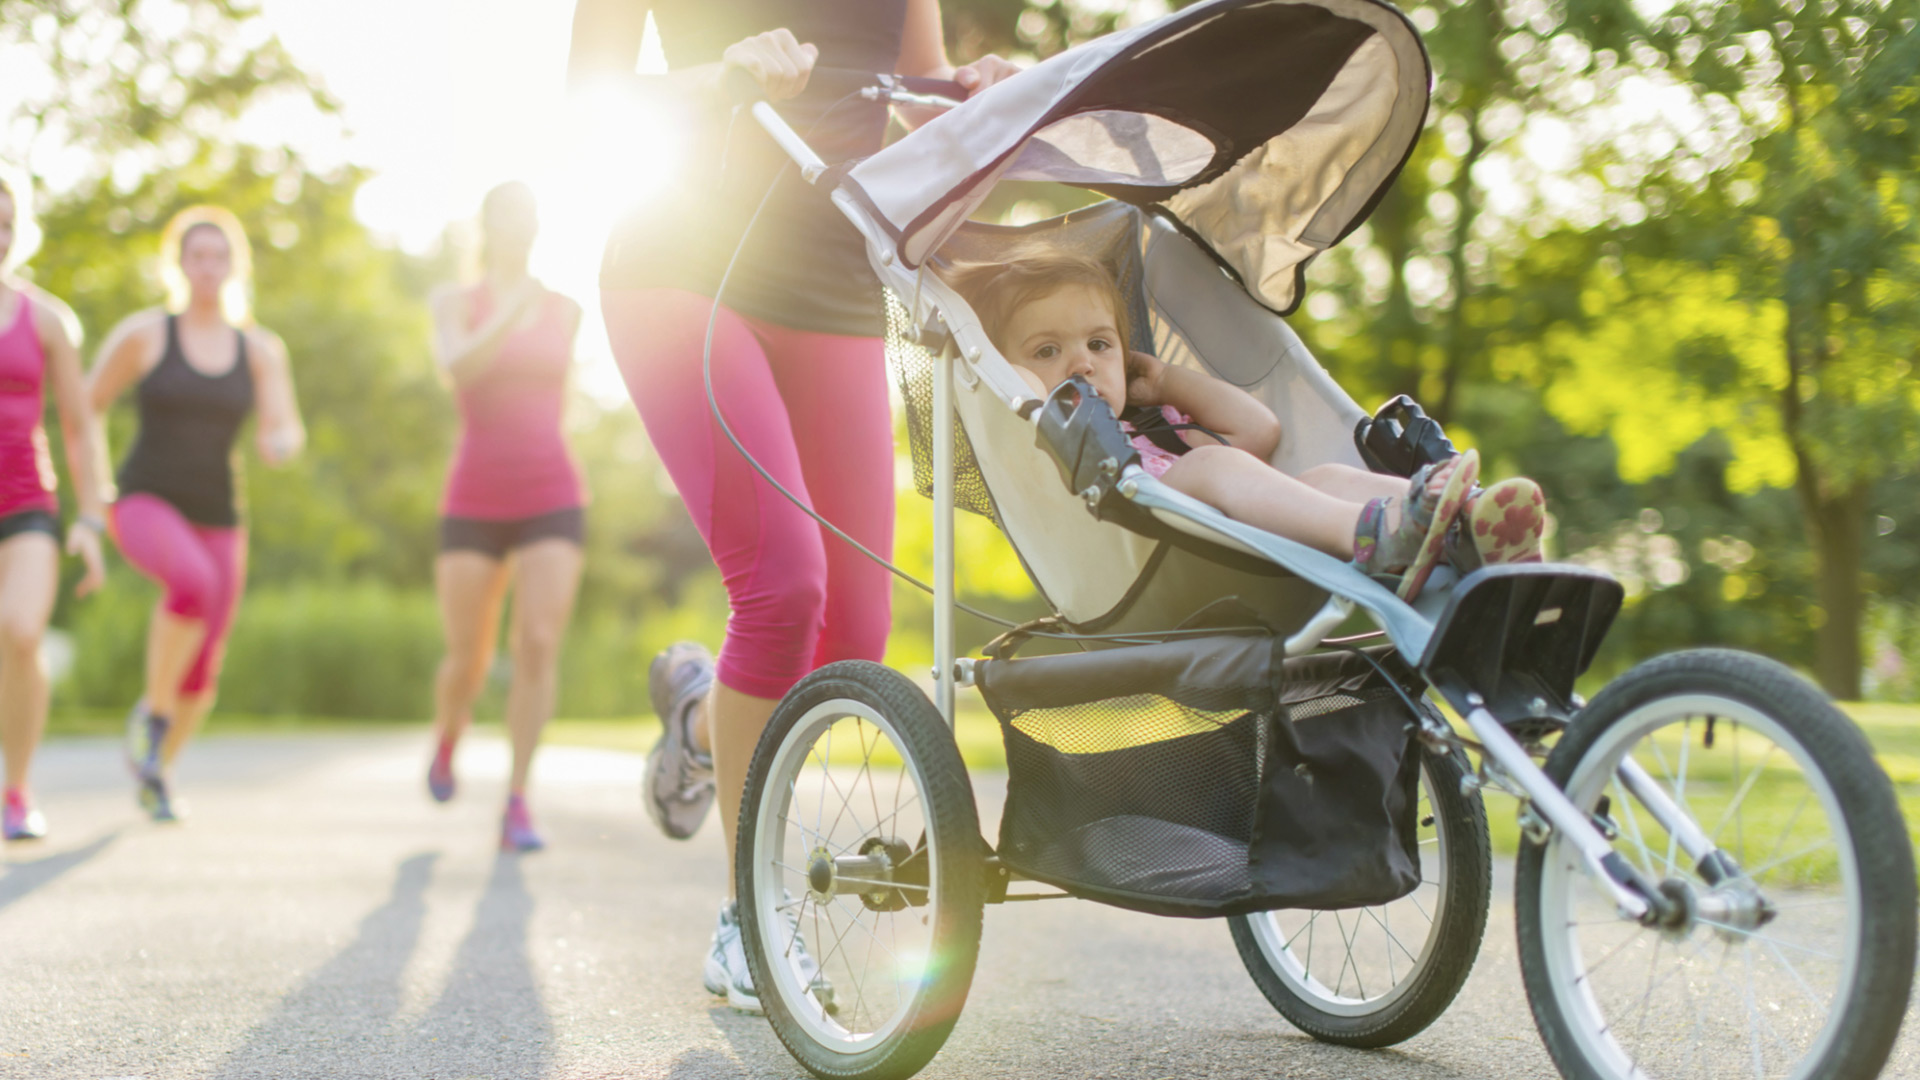 Woman jogging with stroller | PregnancyAndBaby.com